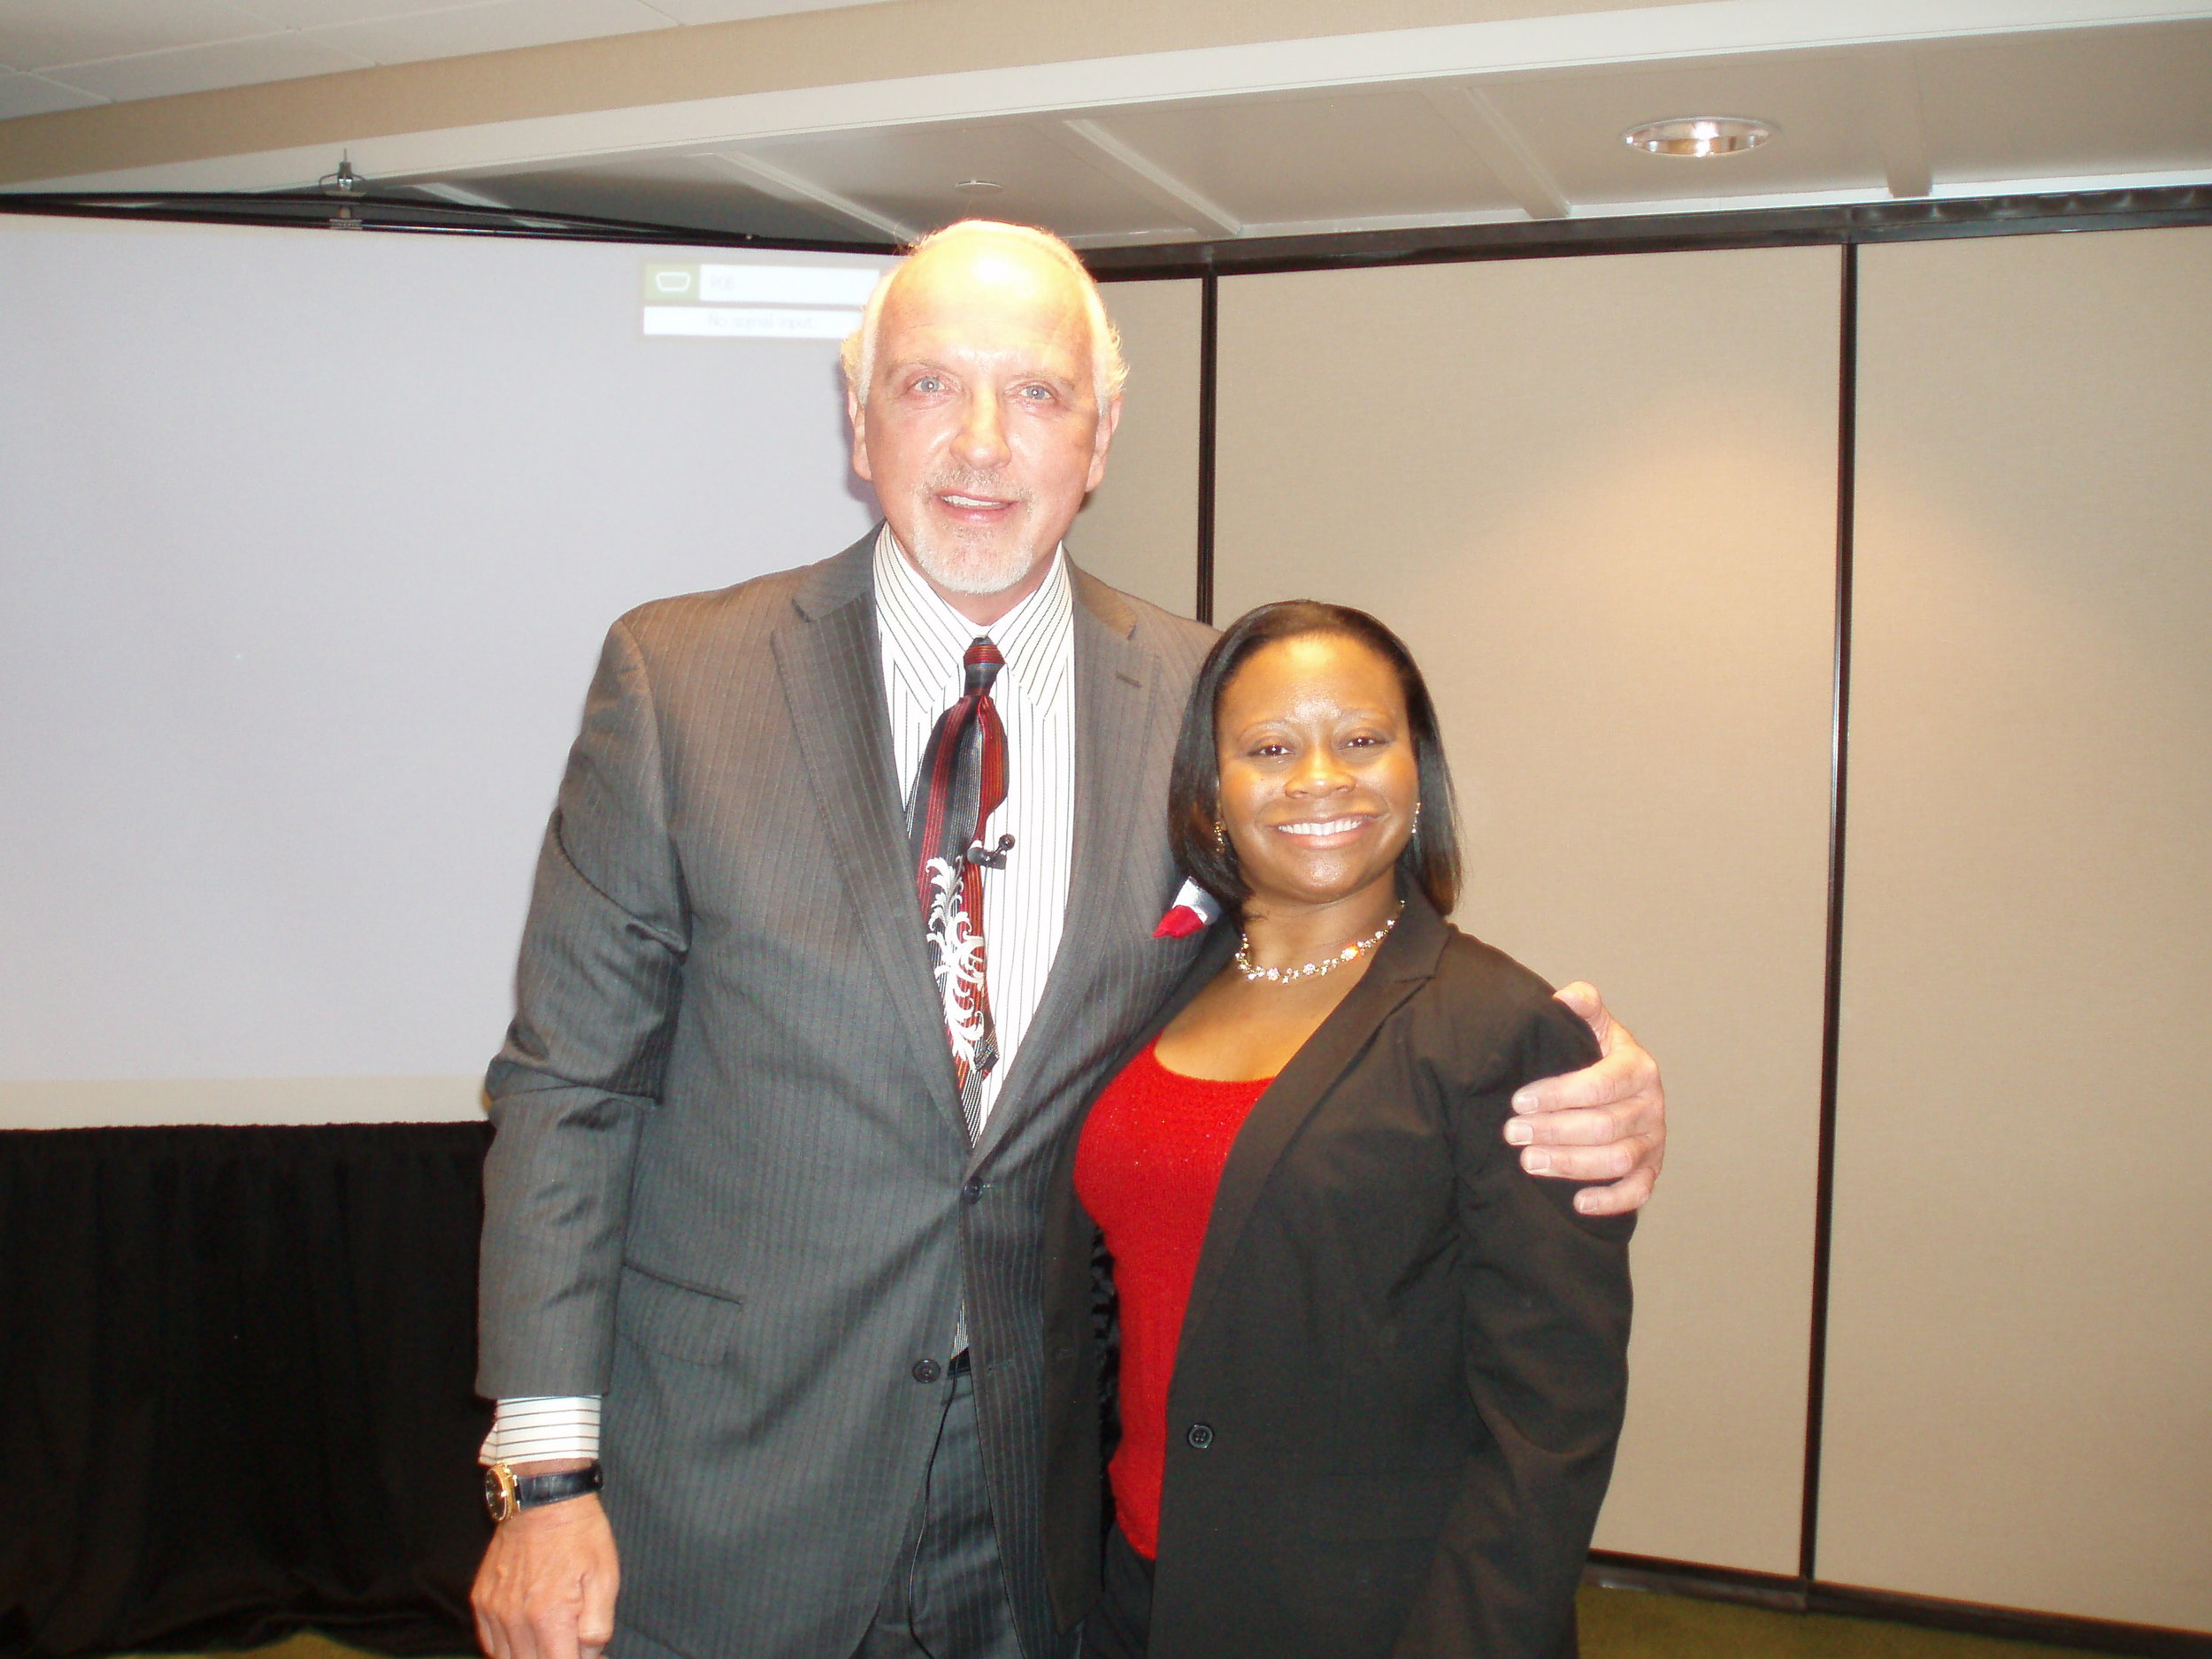 Mark Victor Hansen, co-author of the Chicken Soup for the Soul, Motivational Speaker, Trainer, and Author